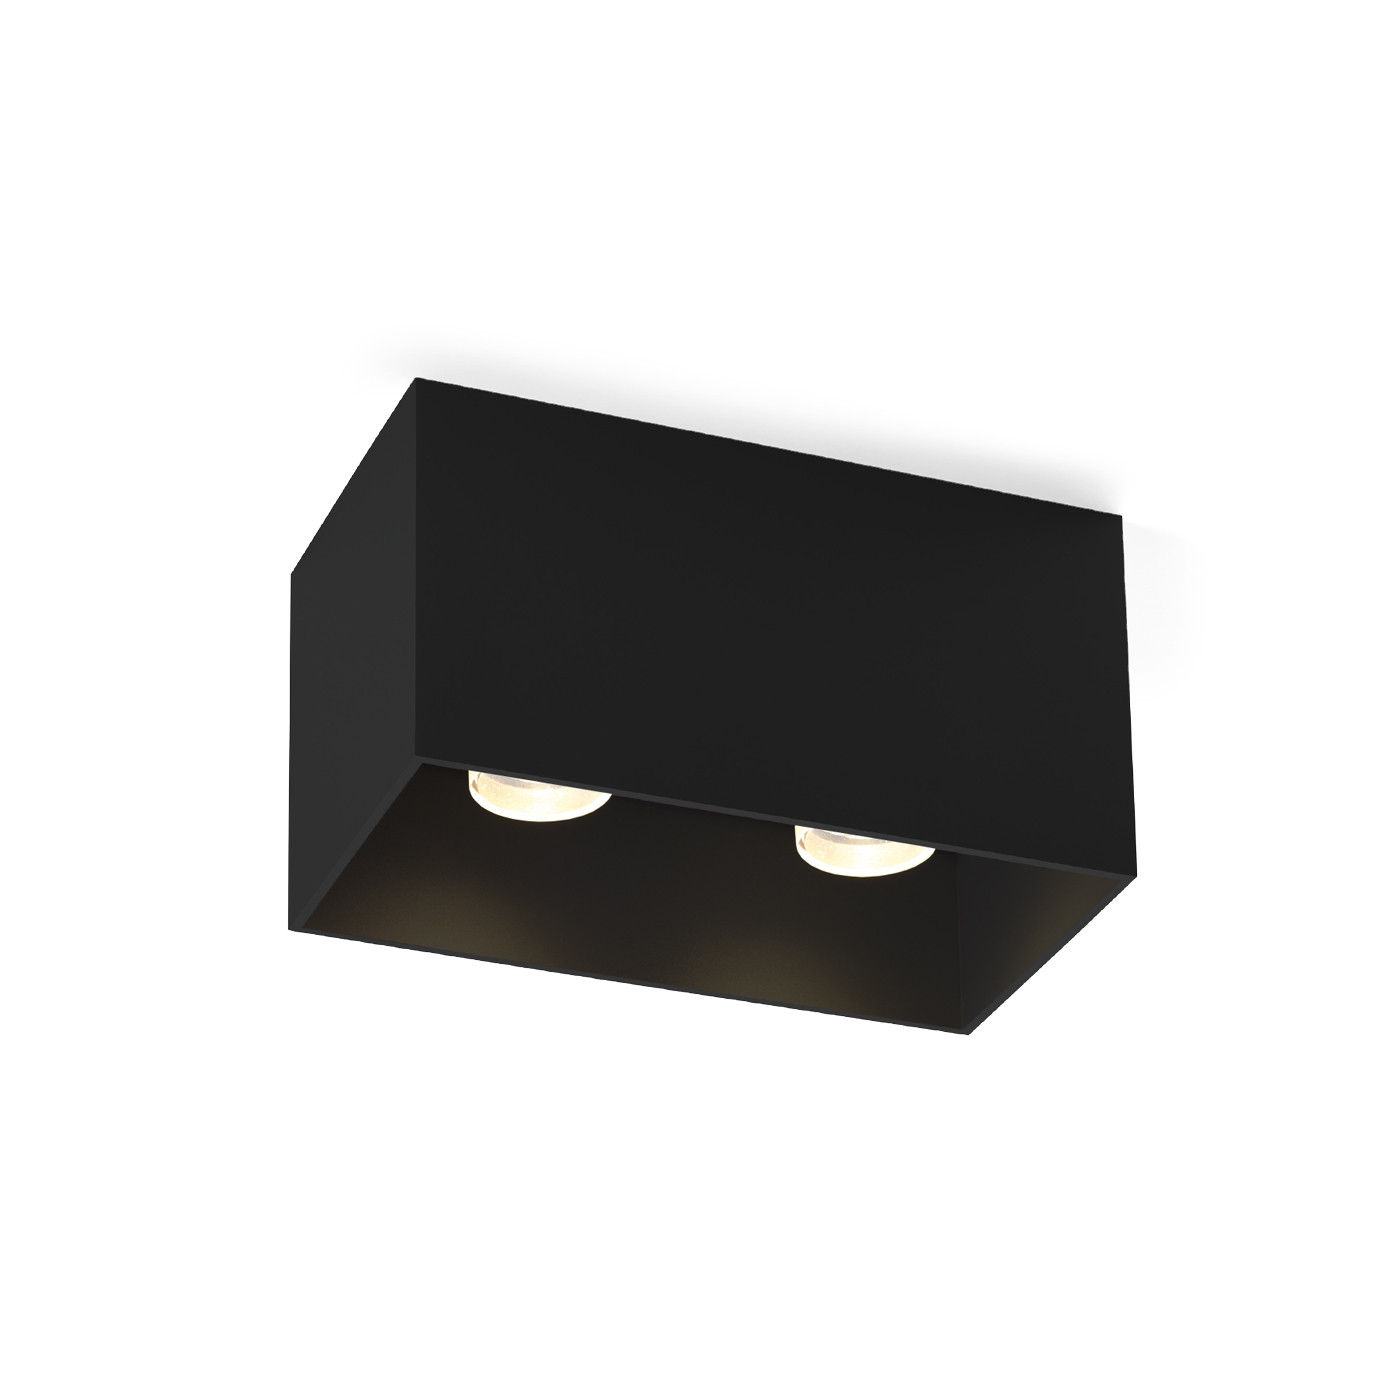 Wever & Ducré Box 2.0 2700K Ceiling Light